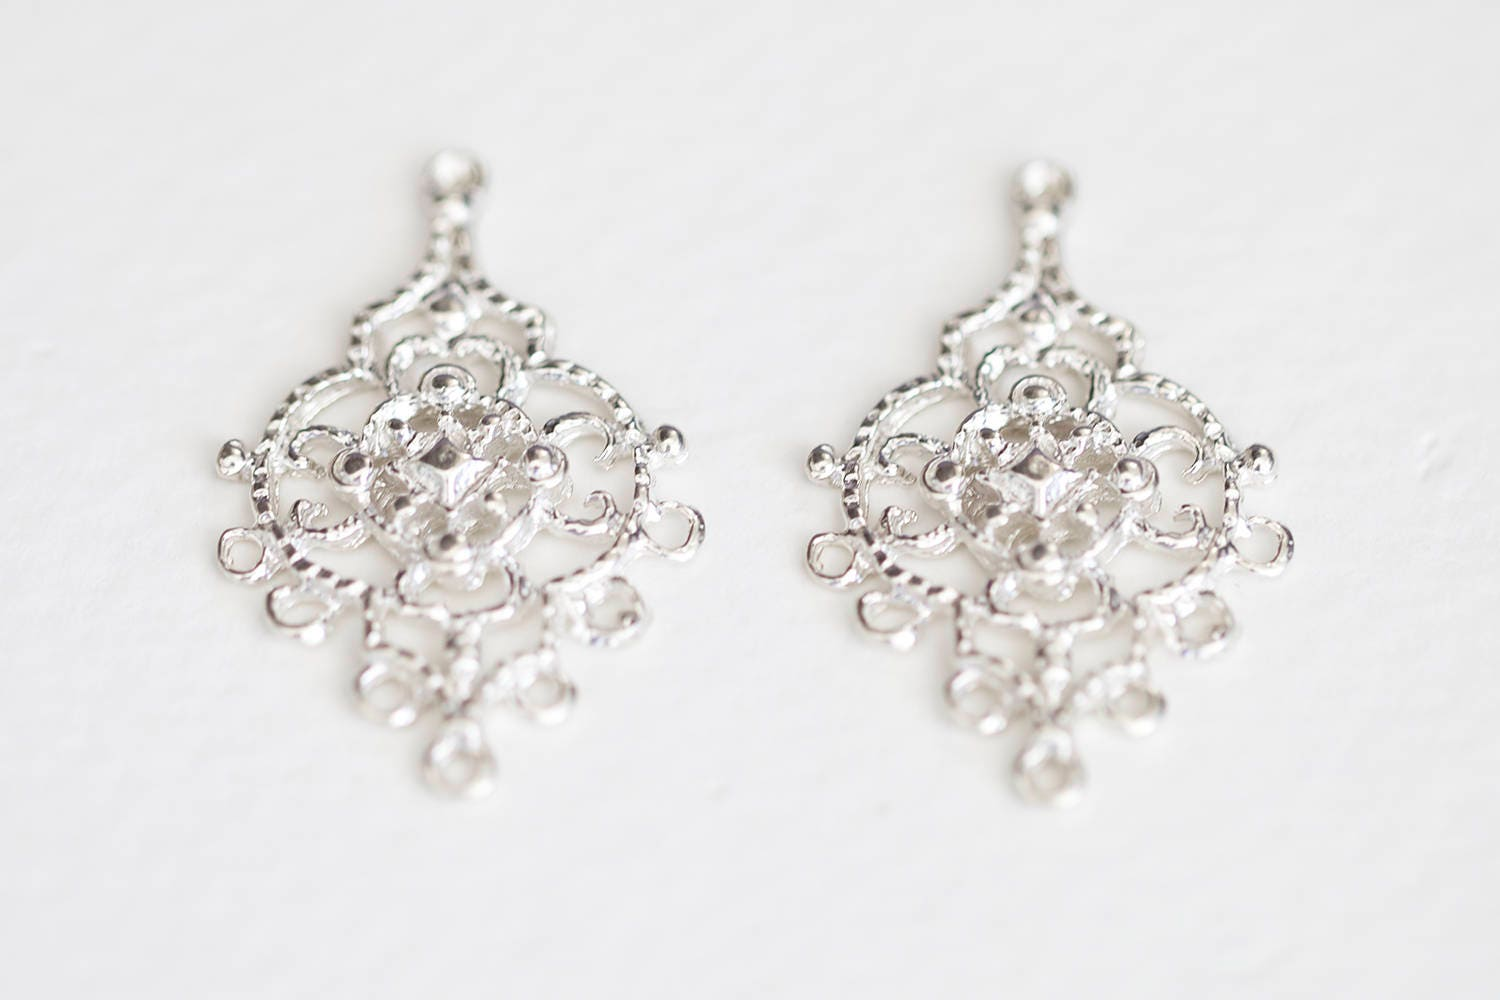 Sterling silver chandelier earring components 7 holes 925 sold by luxem mozeypictures Gallery